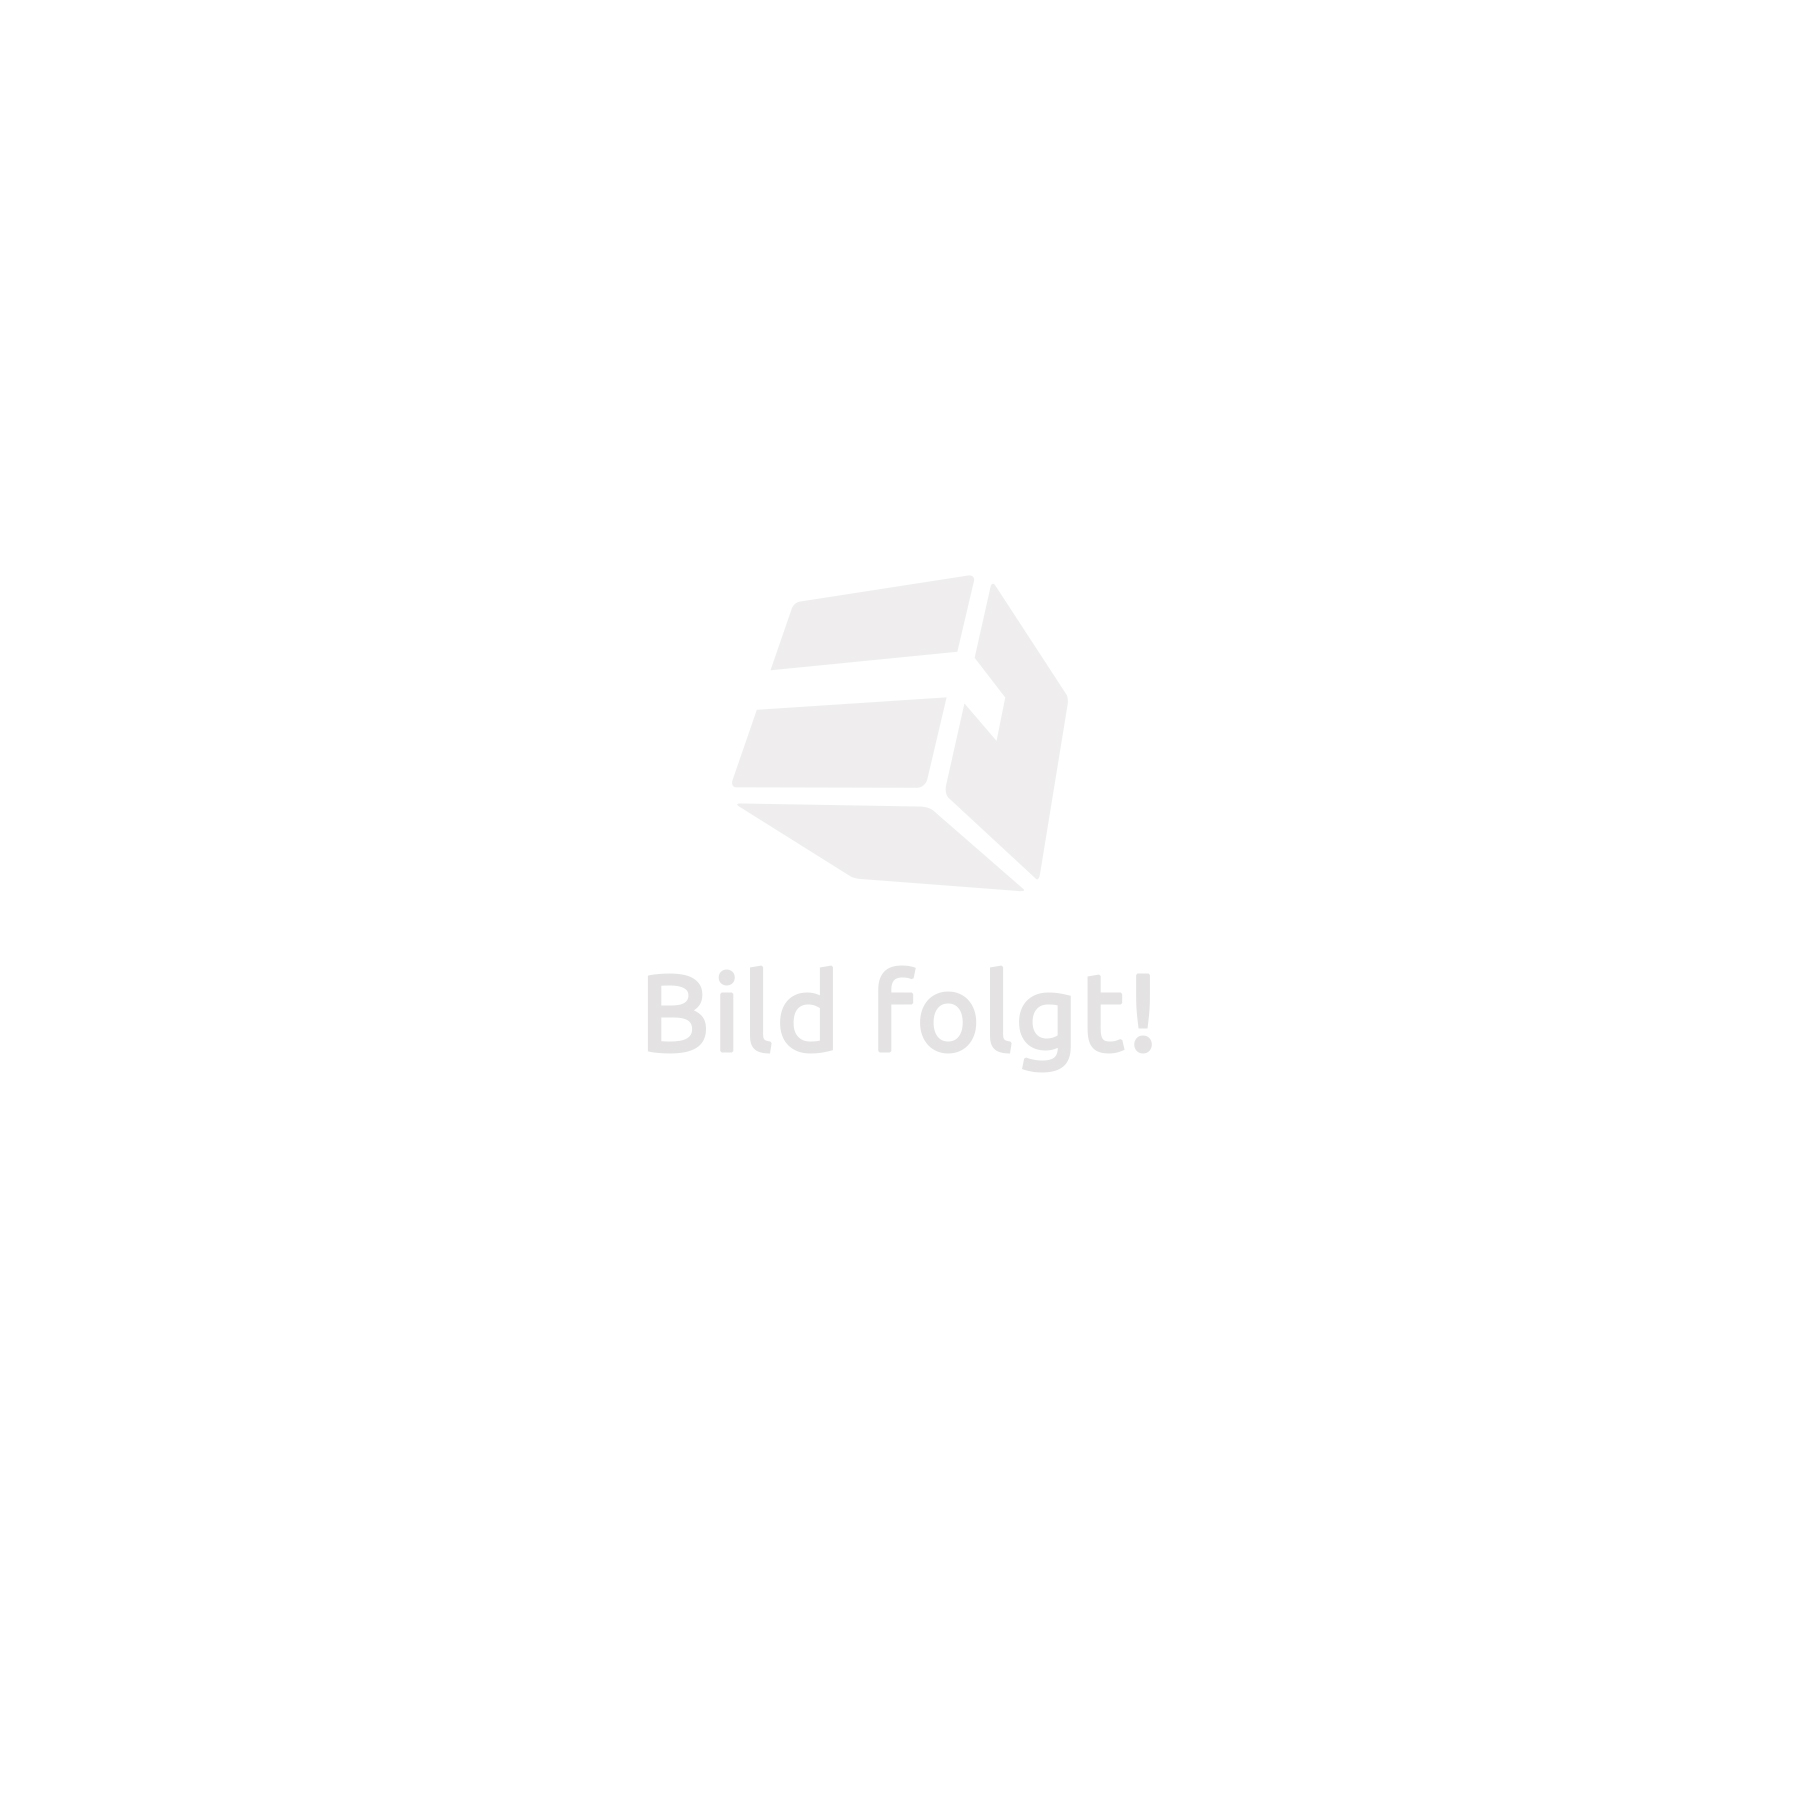 Kit de estudio de fotografía con bombillas + softbox